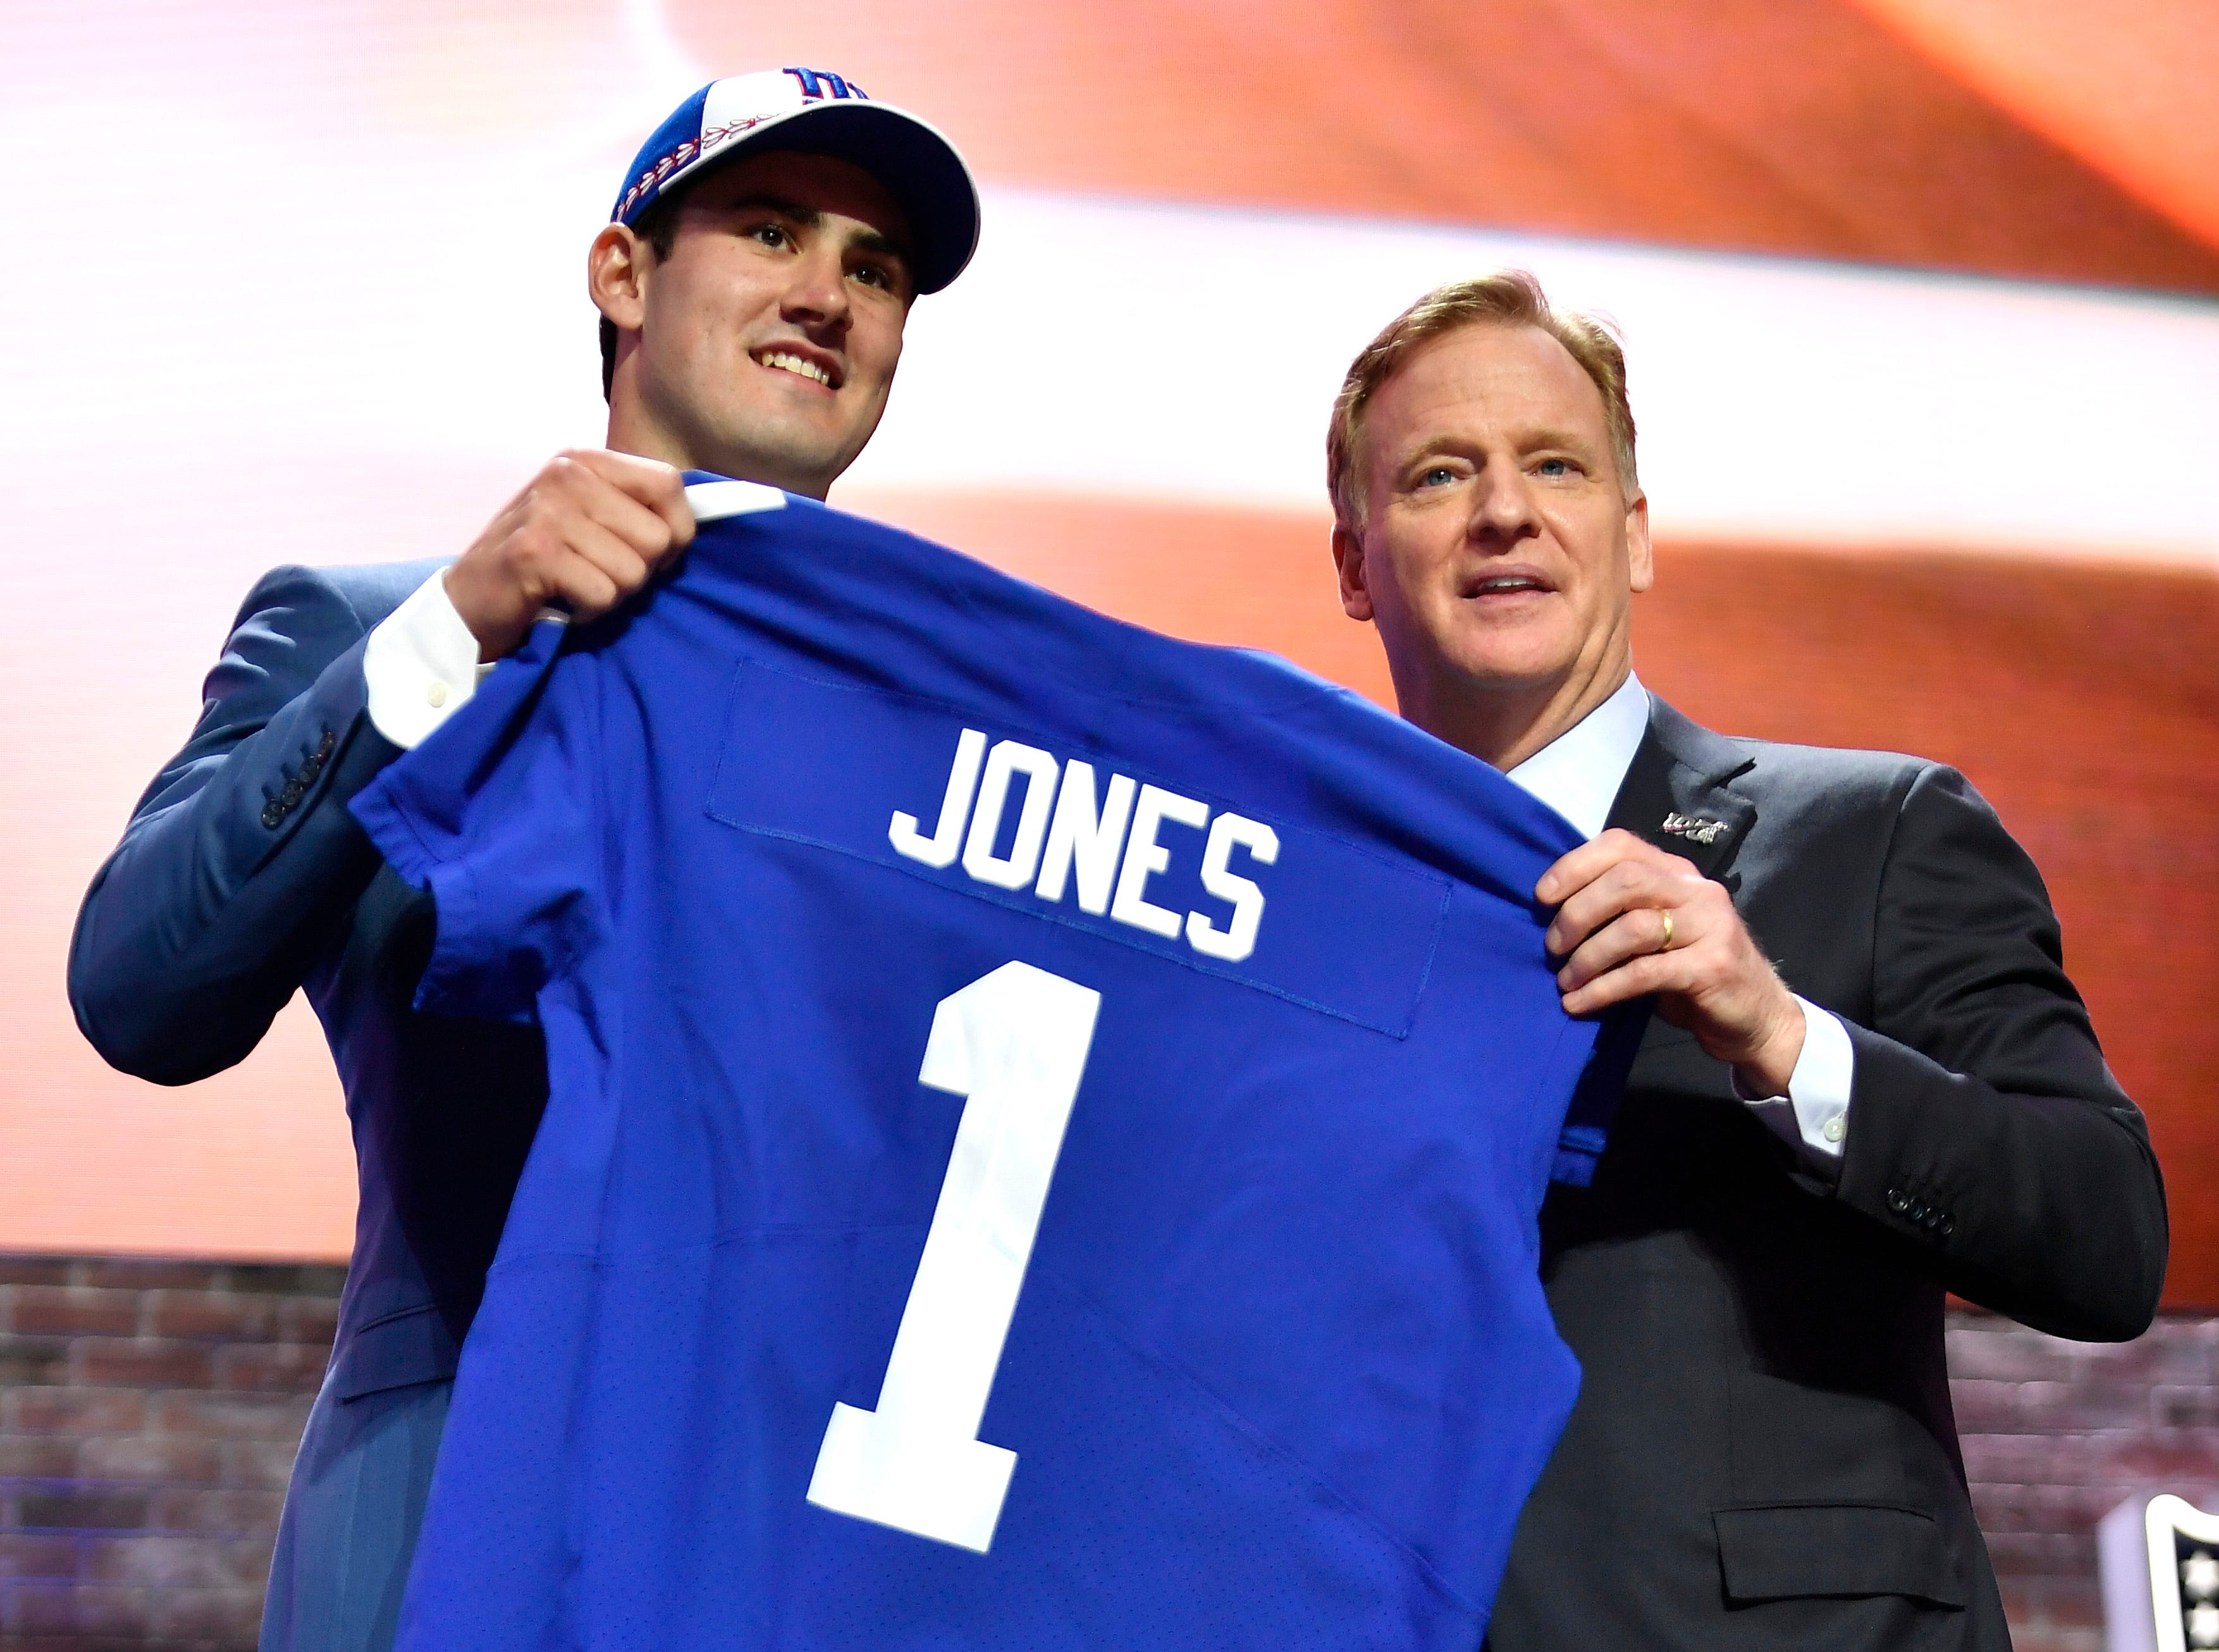 Daniel Jones holds his New York Giants jersey with NFL Commissioner Roger Goodell during the first round of the NFL Draft Thursday, April 25, 2019, in Nashville, Tenn.